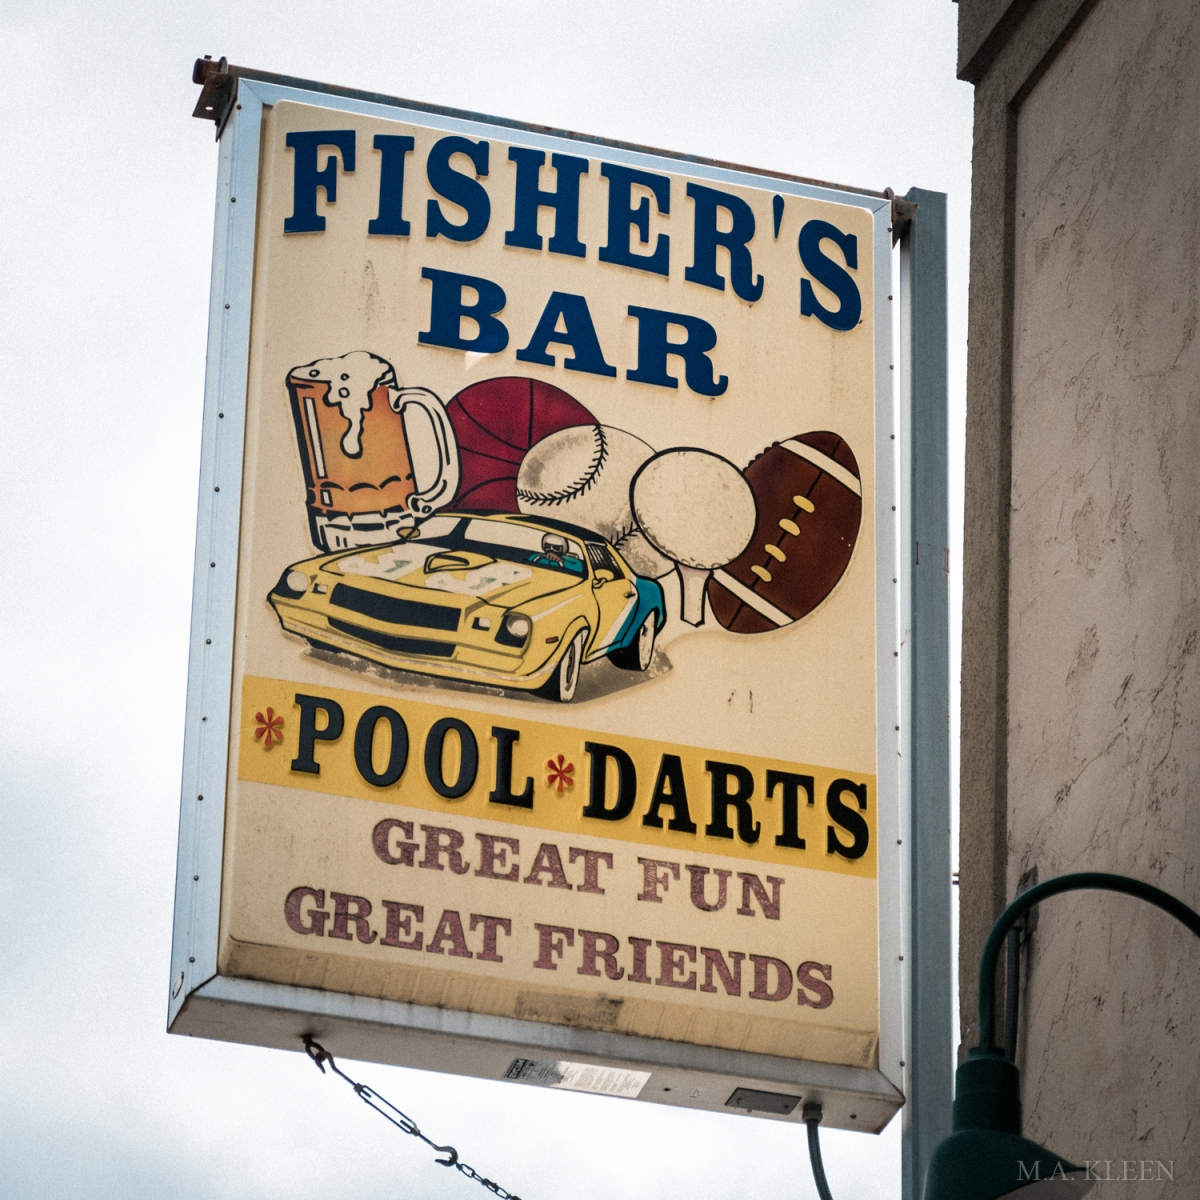 Sign for Fisher's Bar Pub in Wisconsin Dells, Wisconsin.